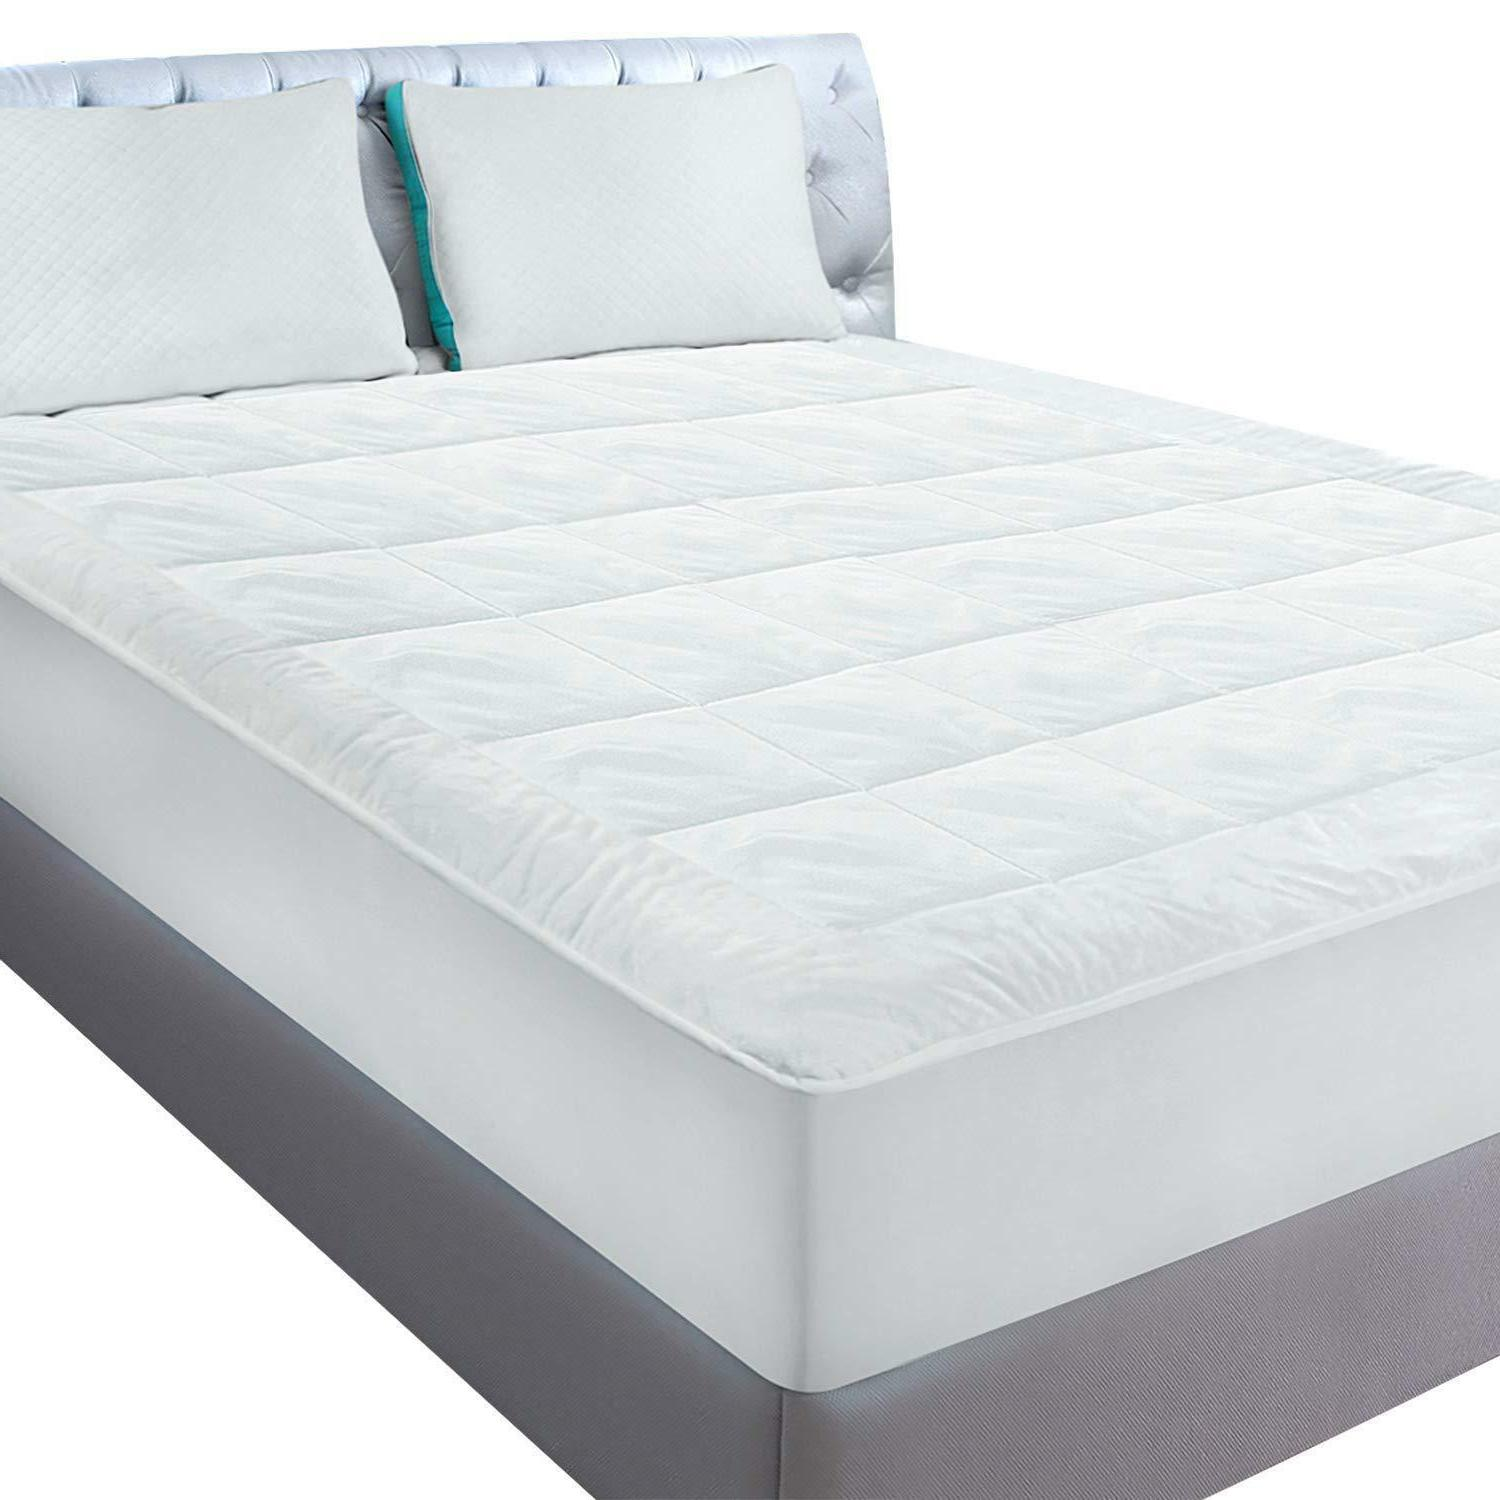 Fleece Pad Quilted Fitted up Deep